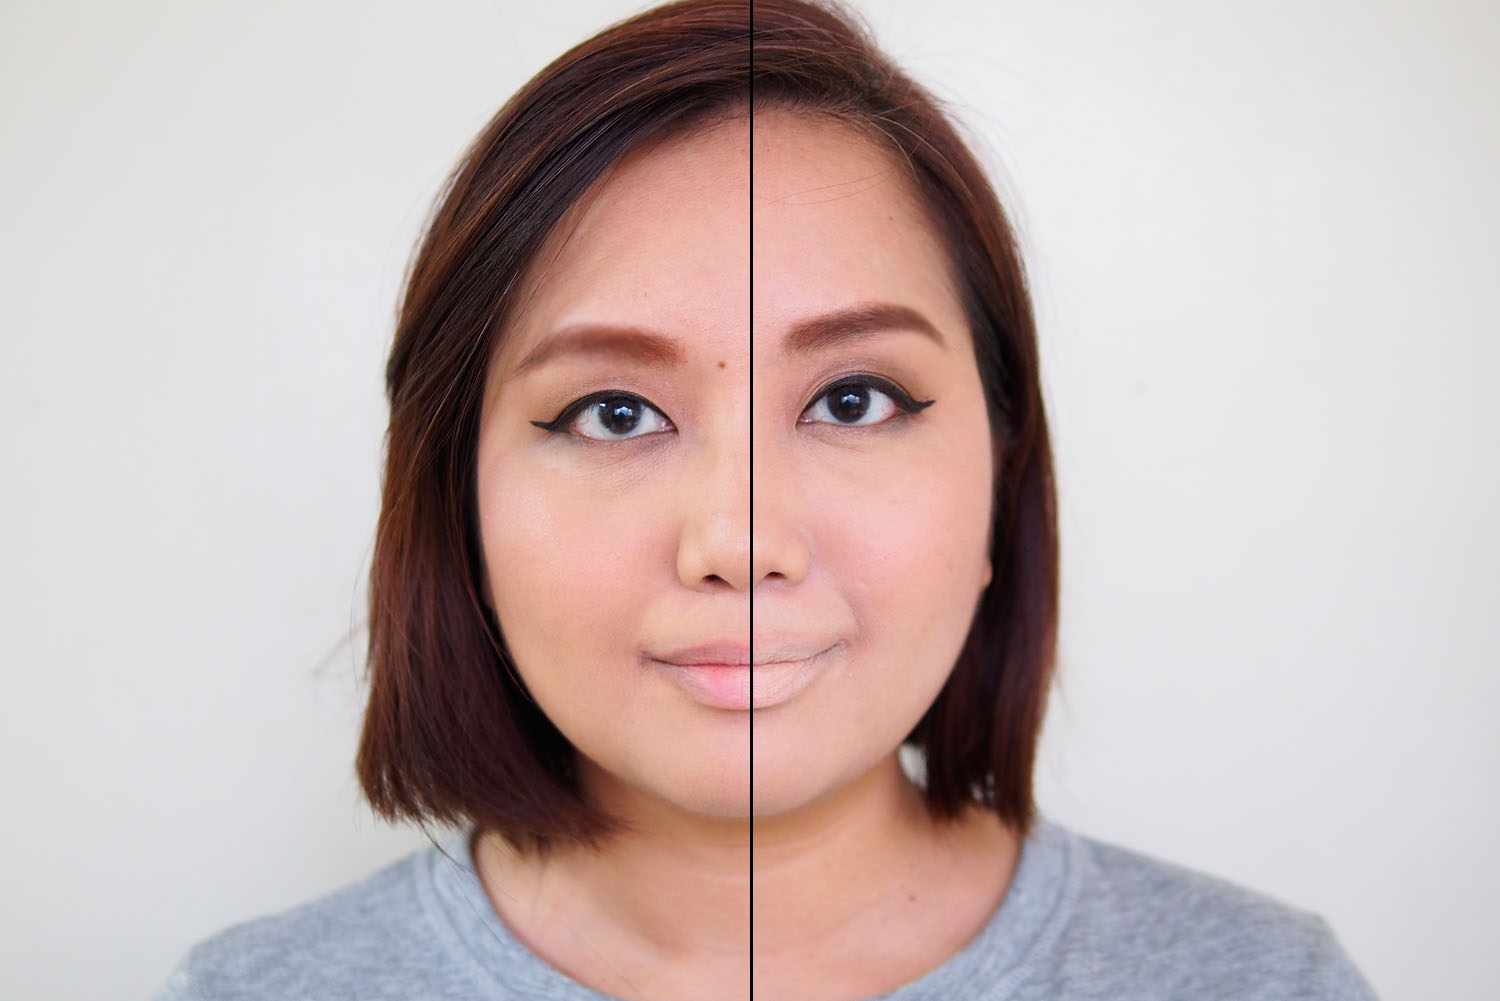 Left: Bare lips, Right: Lips with concealer